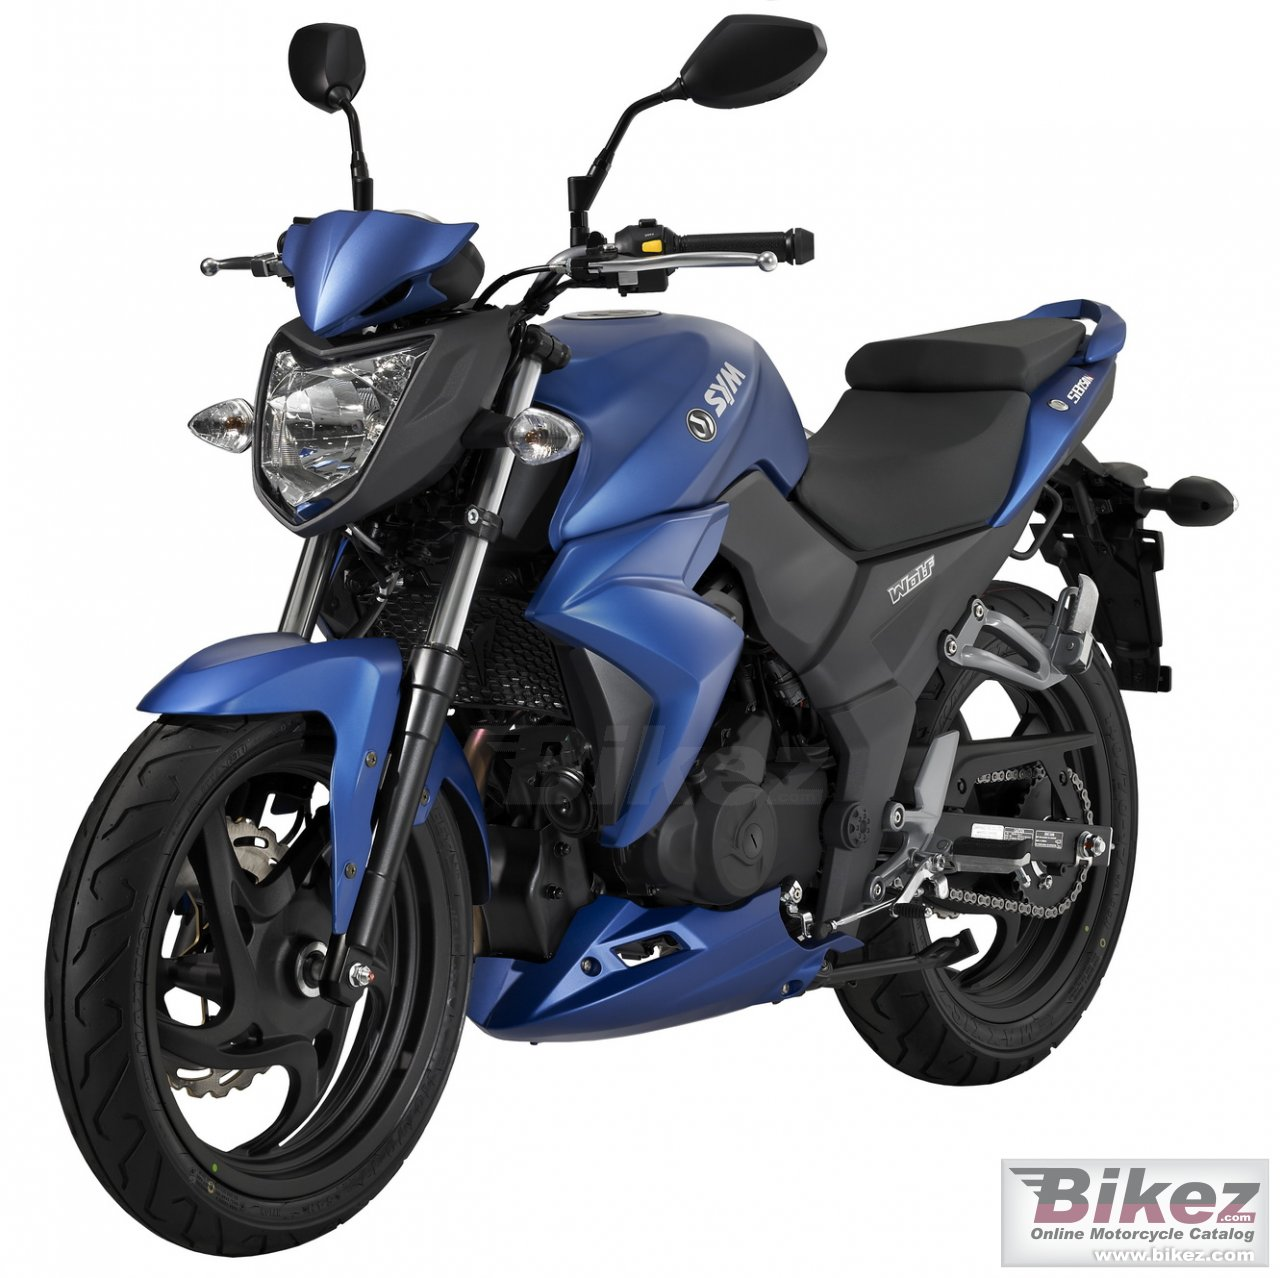 Picture credits yamaha click to submit more pictures - 2012 Sym Wolf Sb250ni